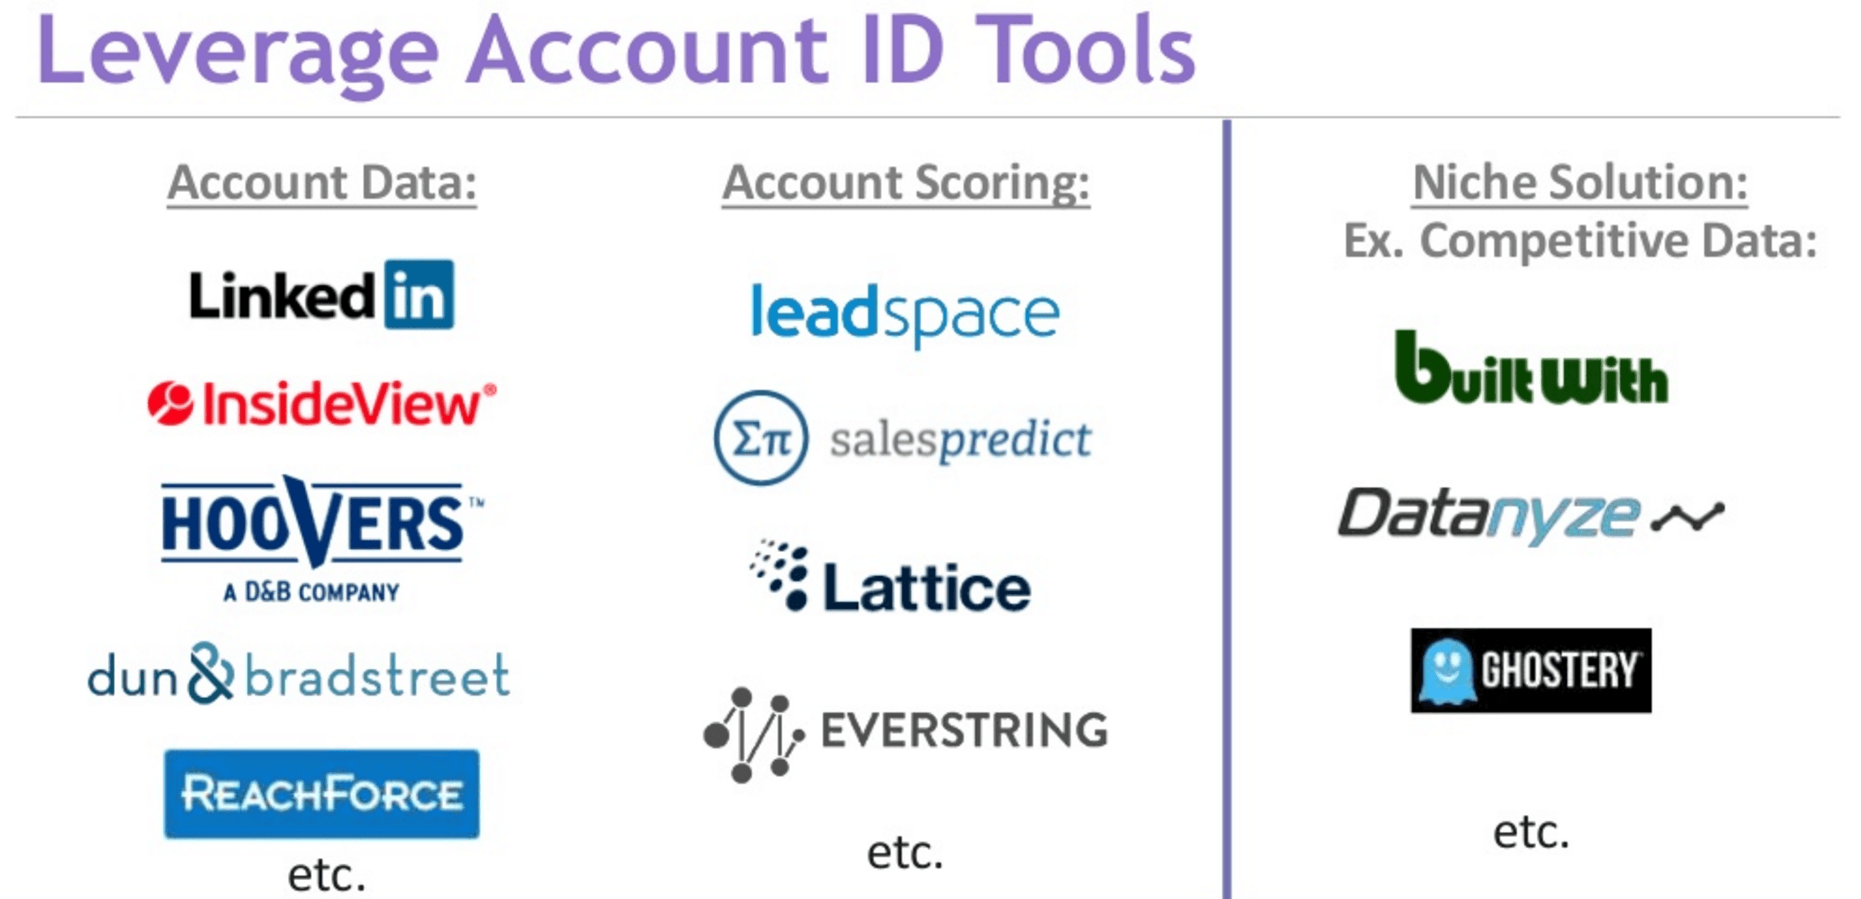 Account ID tools